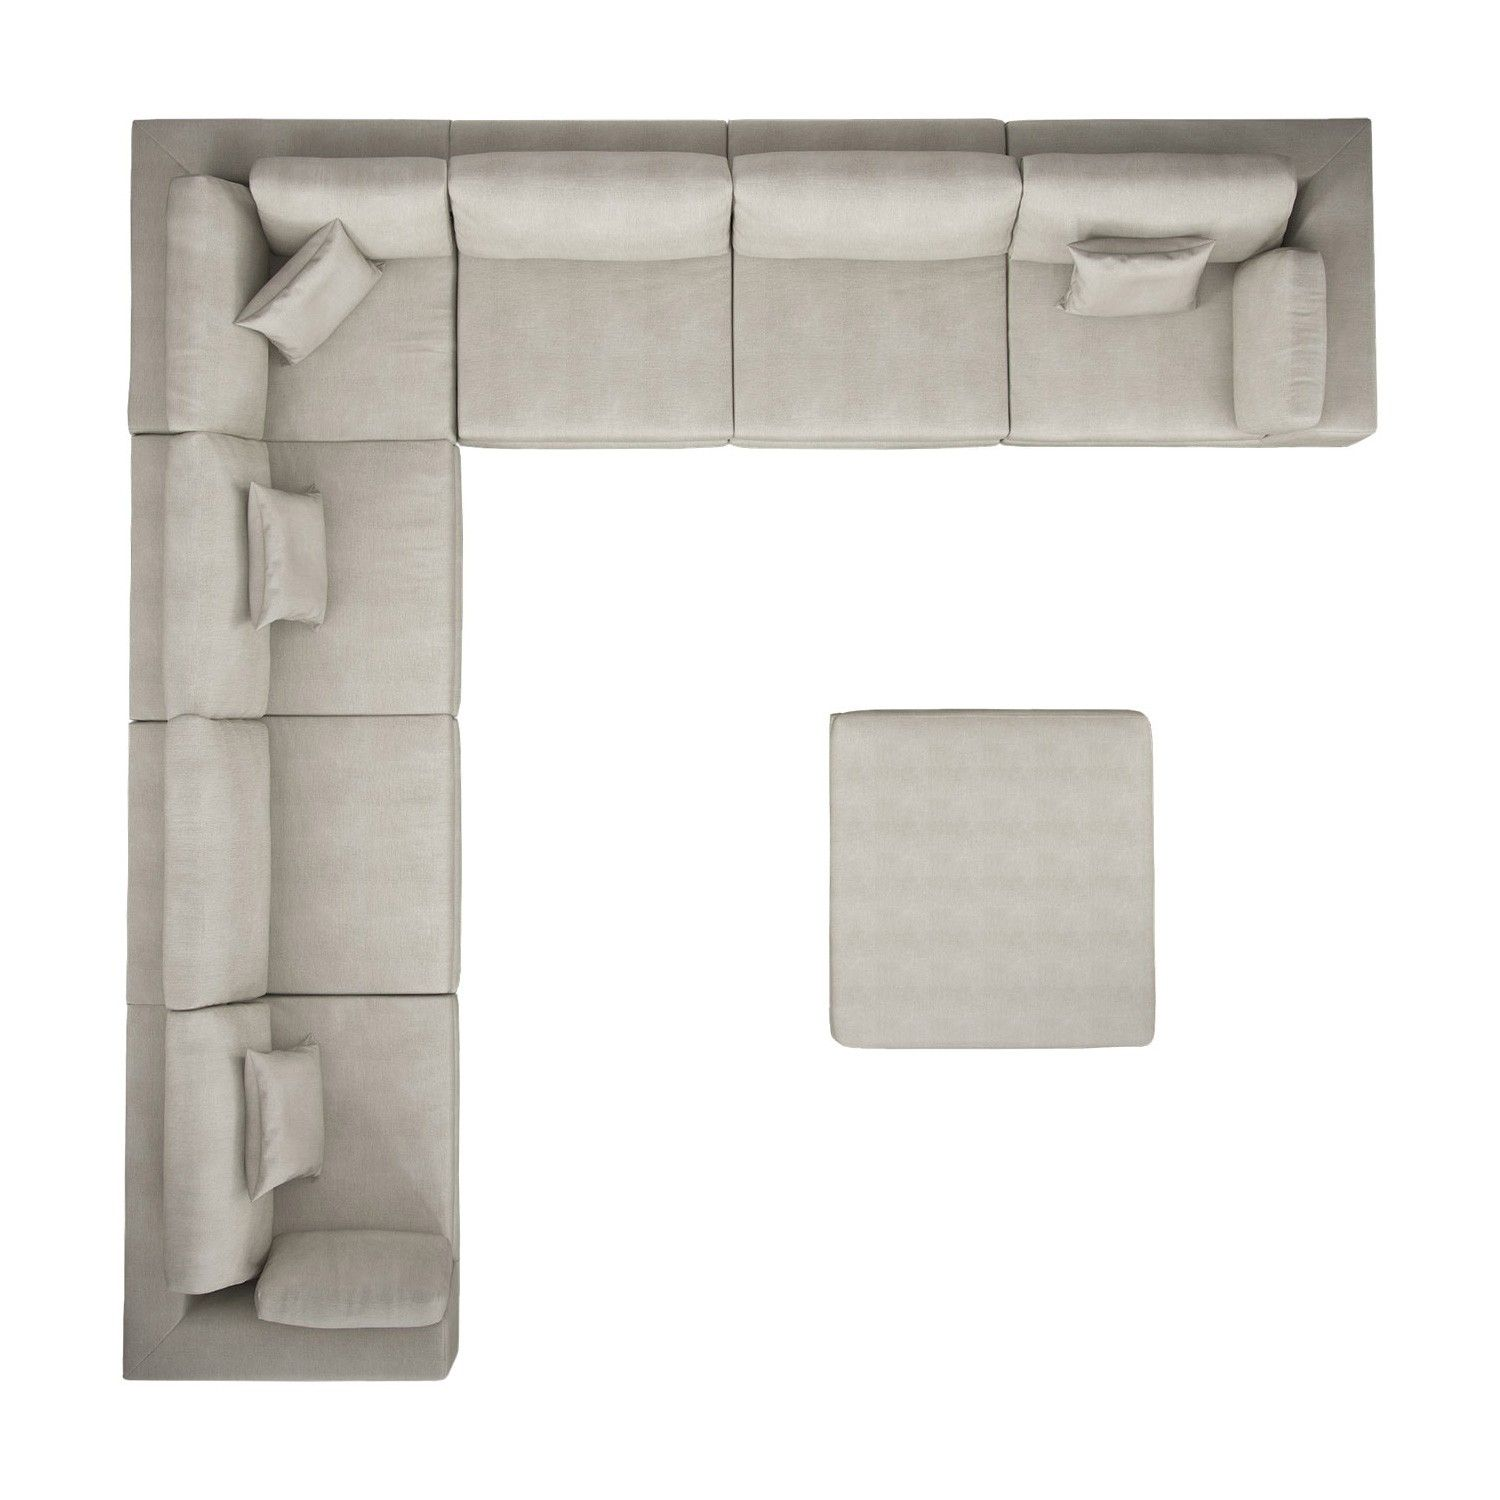 Sofa Set Top View Psd Perry Preconfigured Large Corner Sectional Sofa